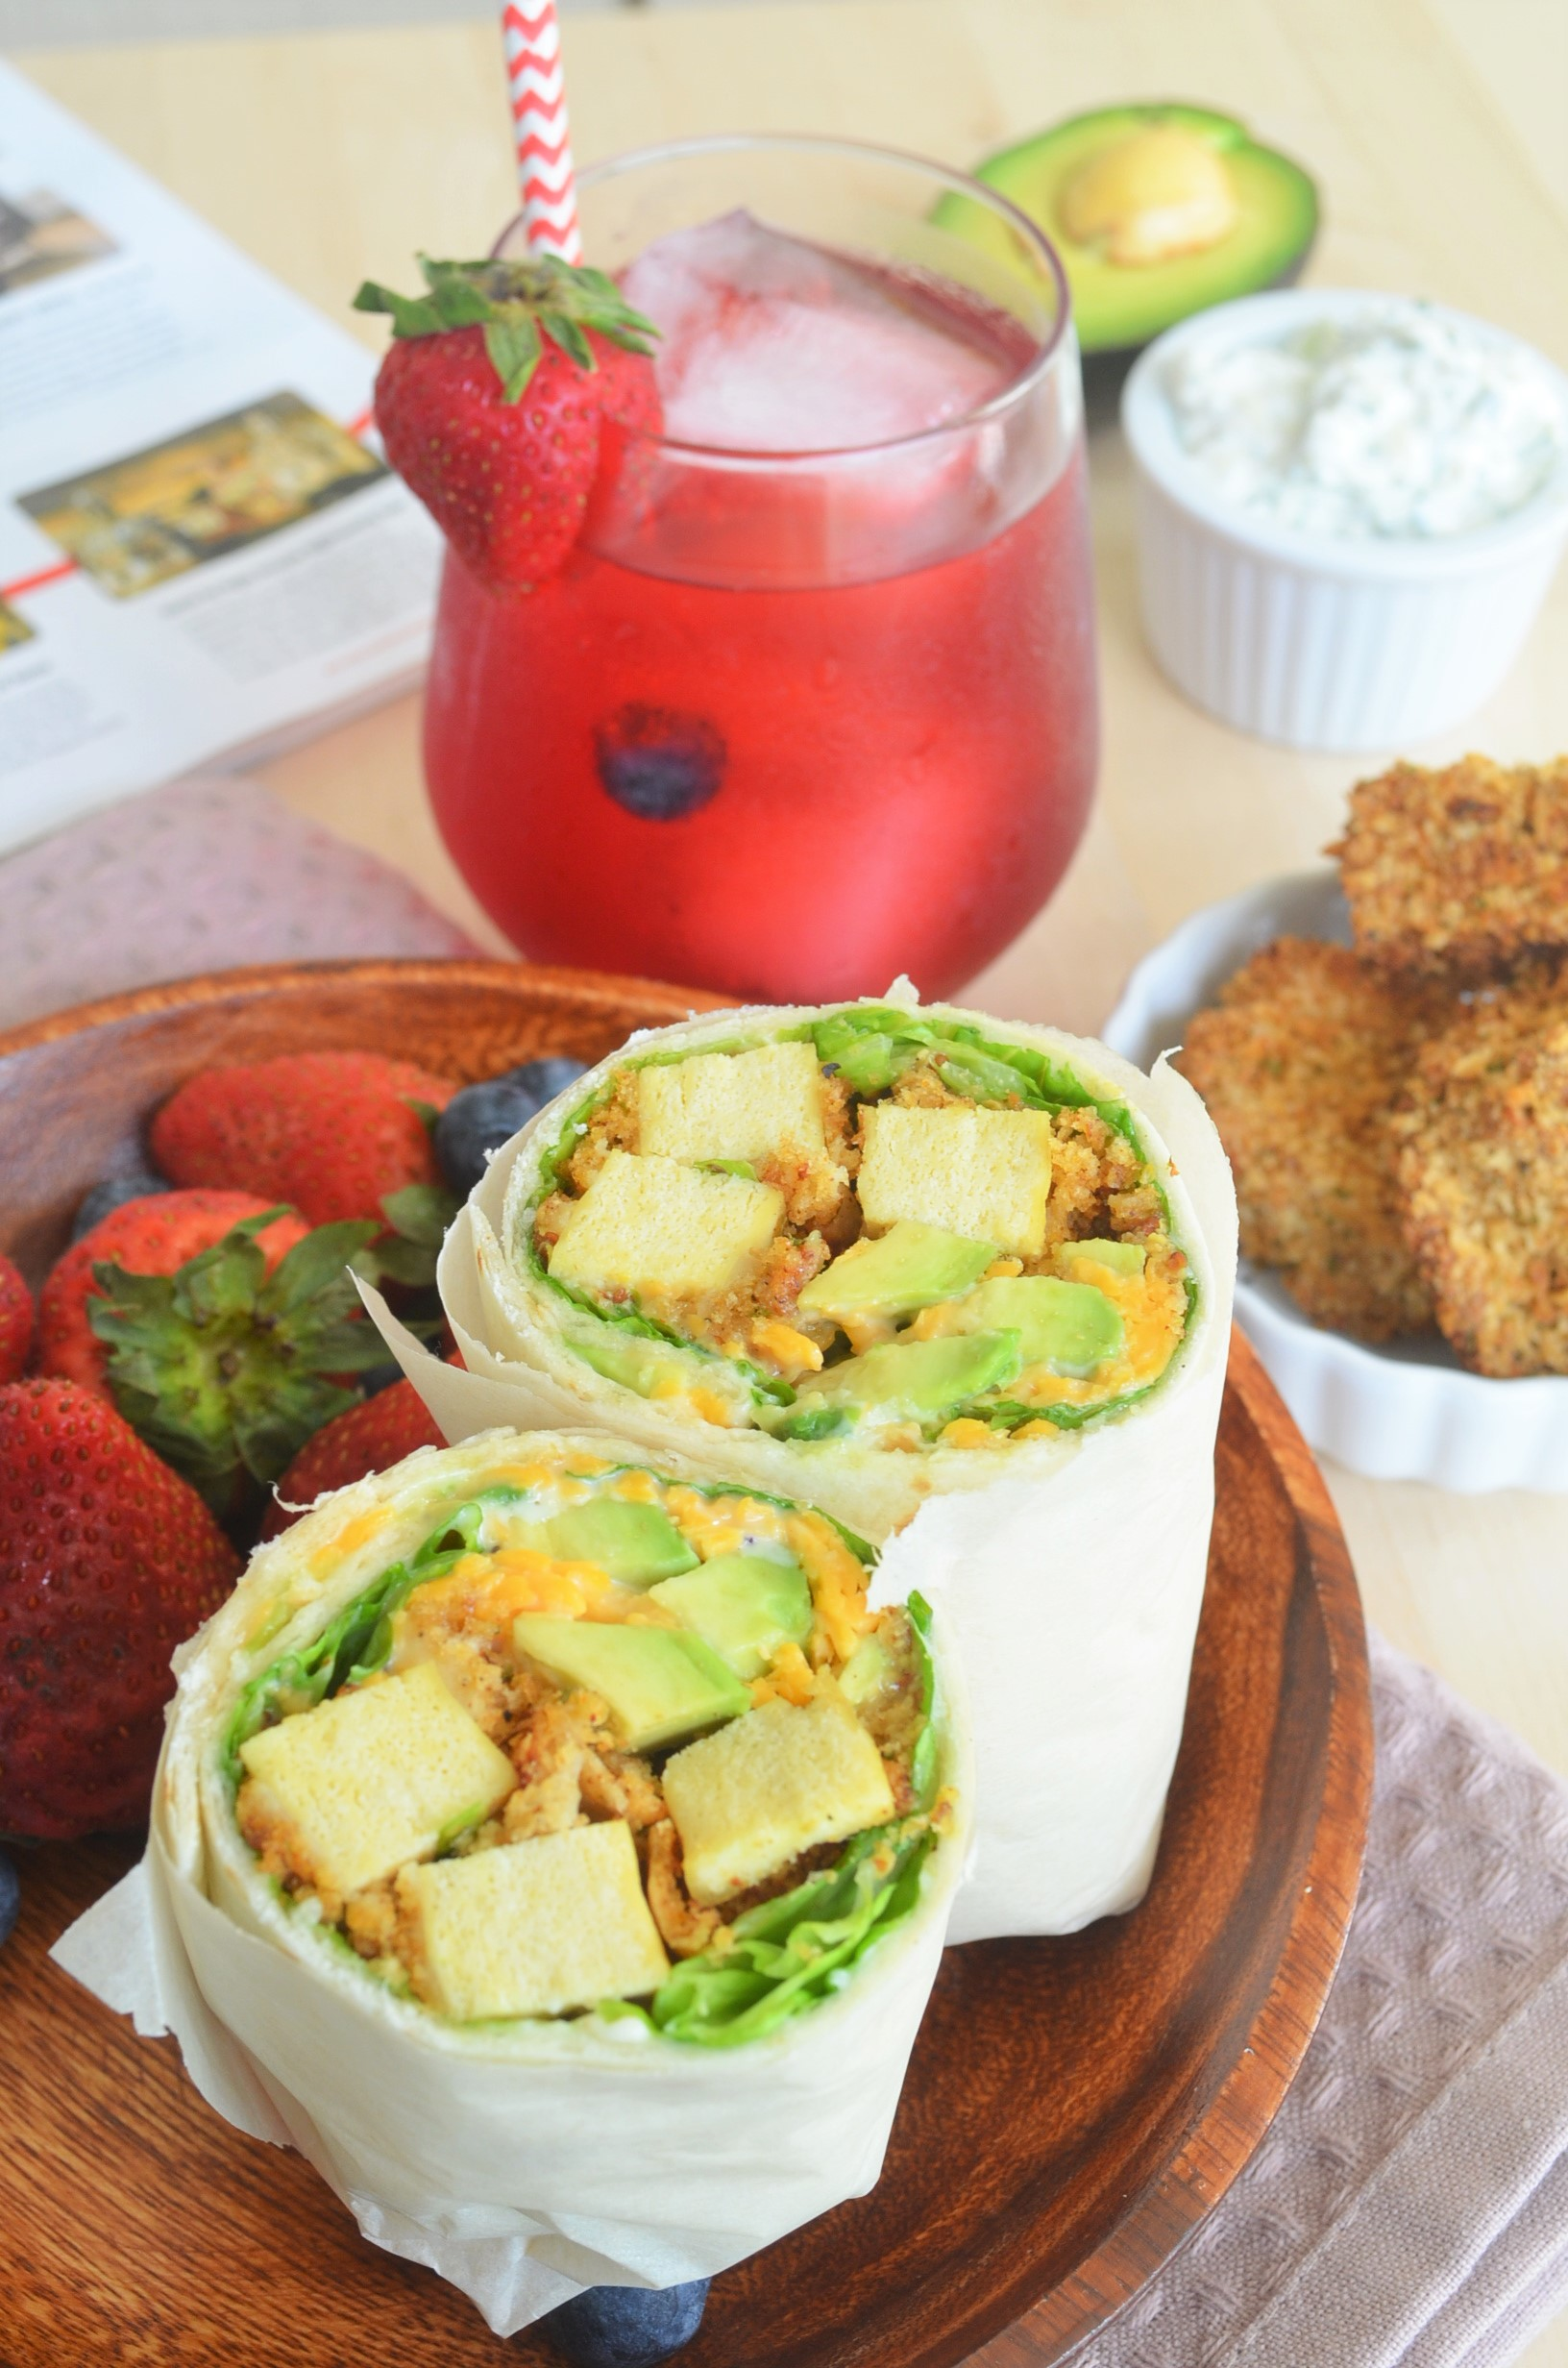 Crisp Baked Tofu Wrap For Two